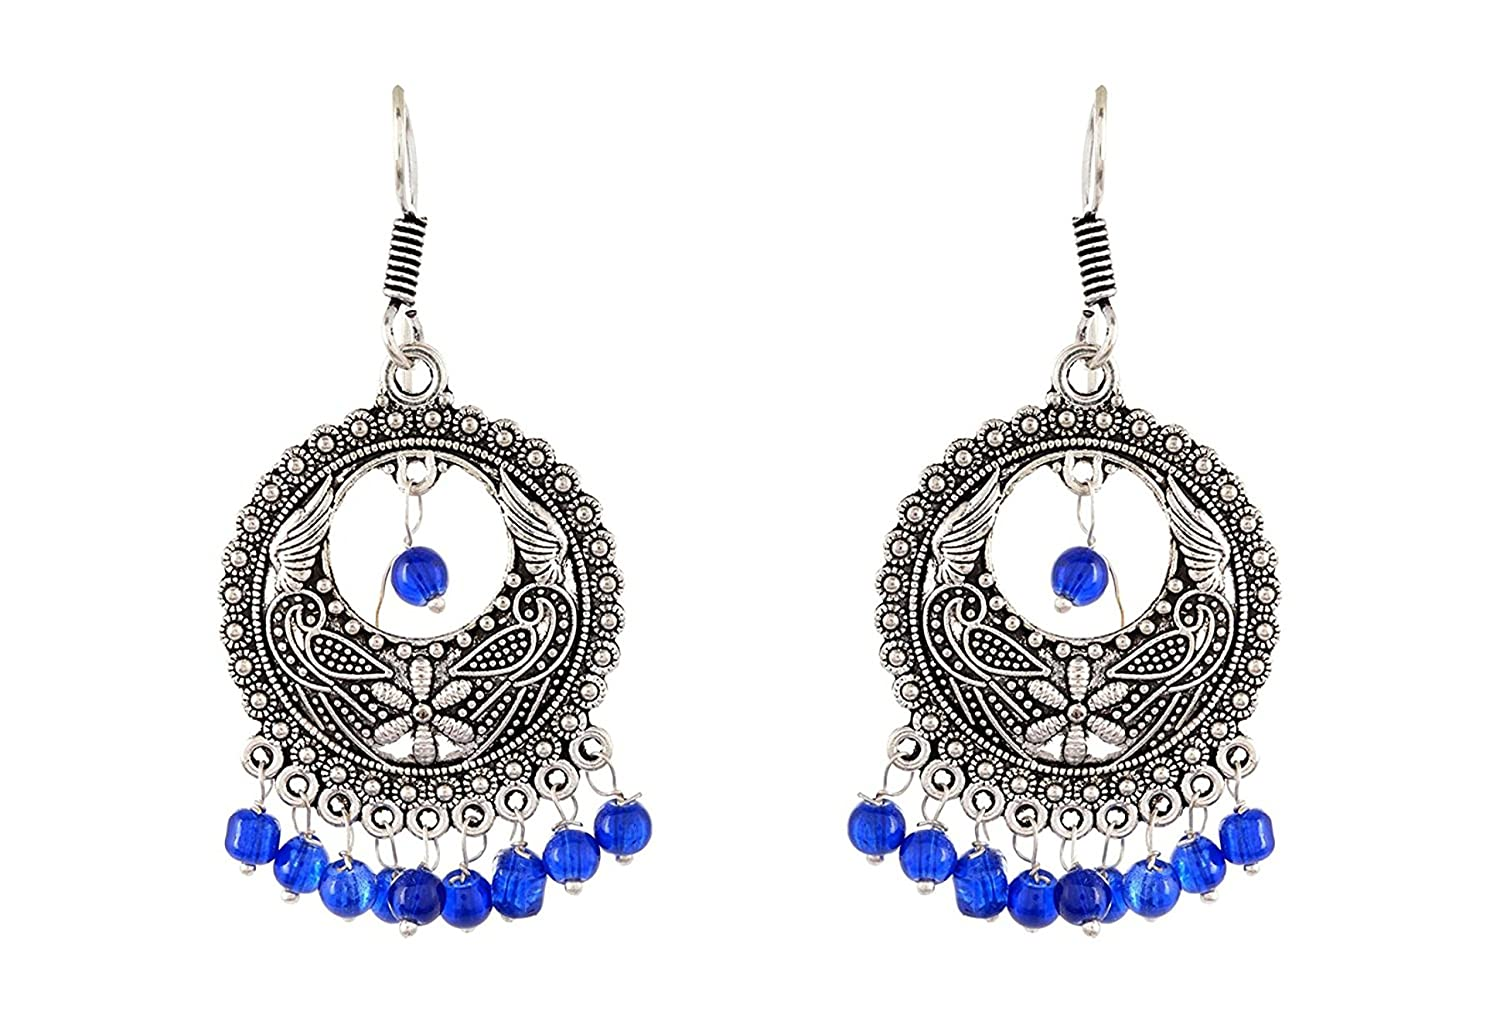 Subharpit Light Weight Metal Blue Indian Dangle Earrings for Women and Girls